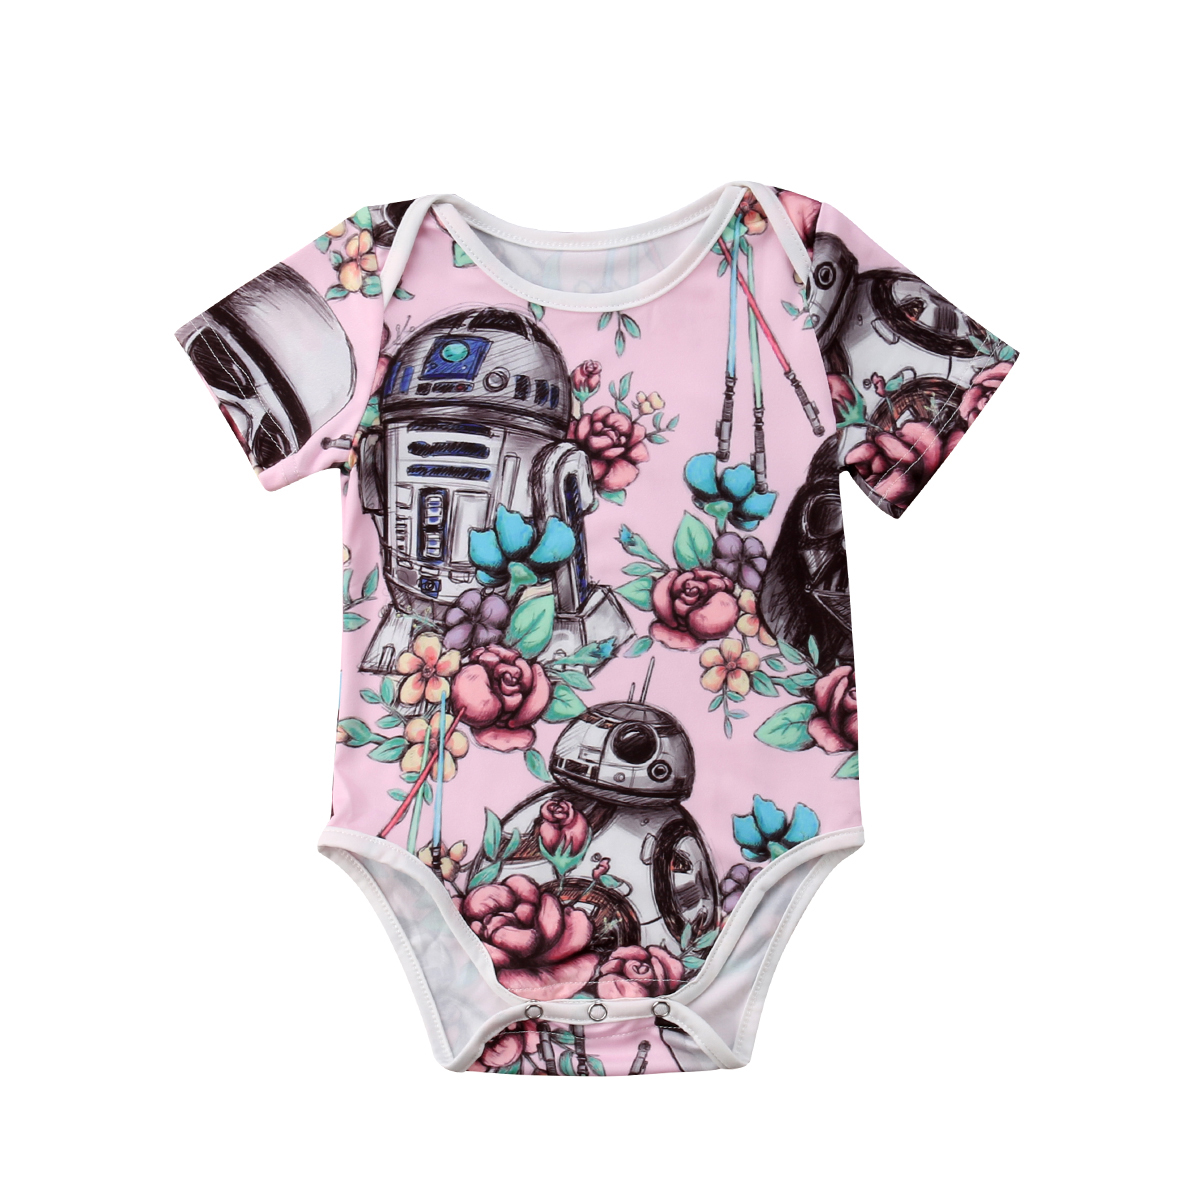 Cute Star Wars Infant Baby Girl   Romper   Jumpsuit Sunsuit Clothes Flower Outfits